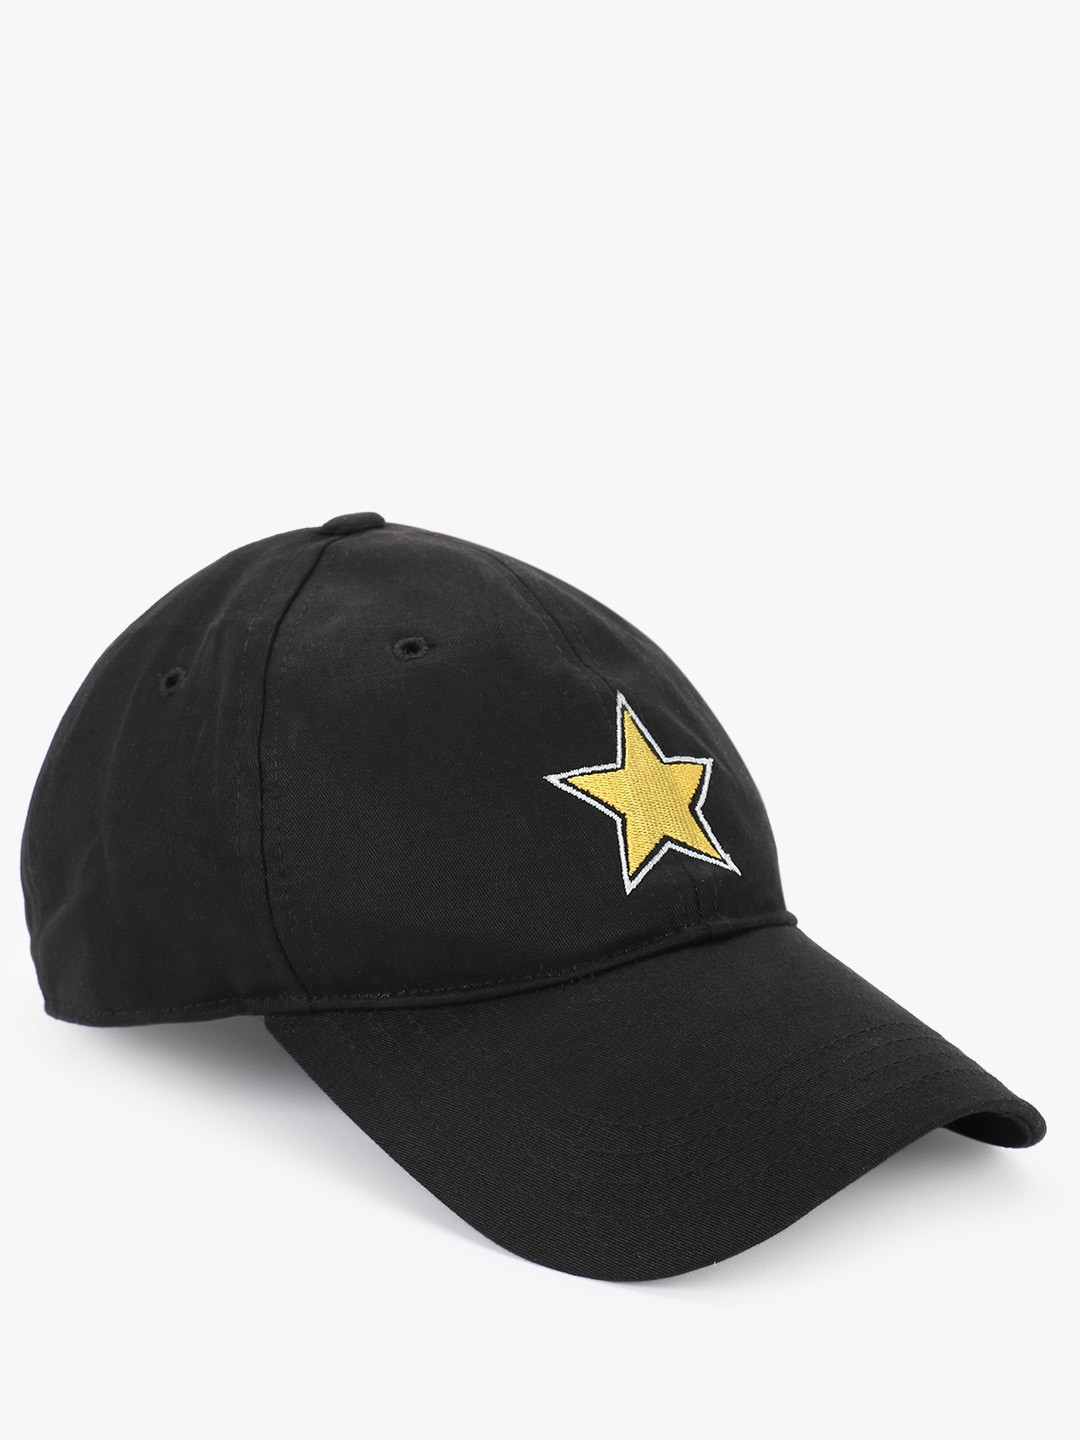 Lazy Panda Black Star Embroidered Cap 1